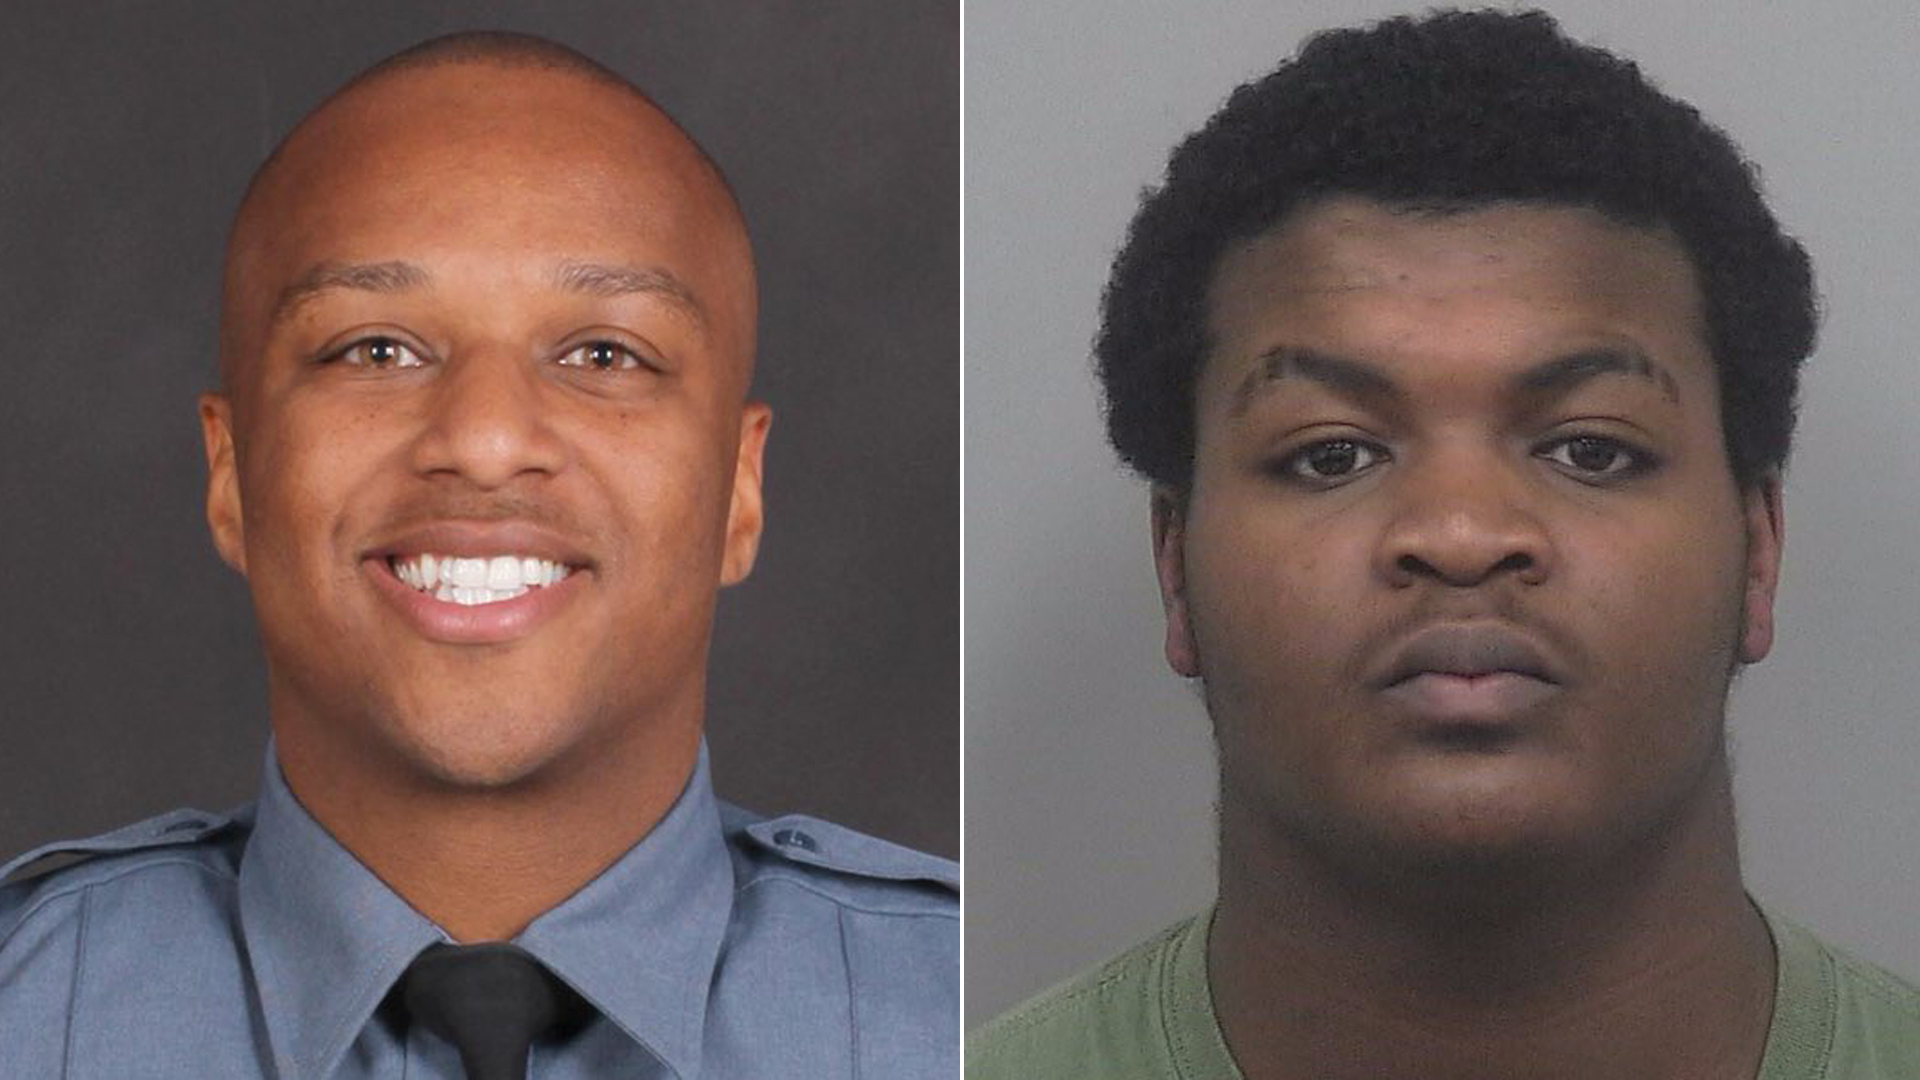 Officer Antwan Toney, left, and suspect Tafahree Maynard are shown in photos released by the Gwinnett Police Department in October 2018.